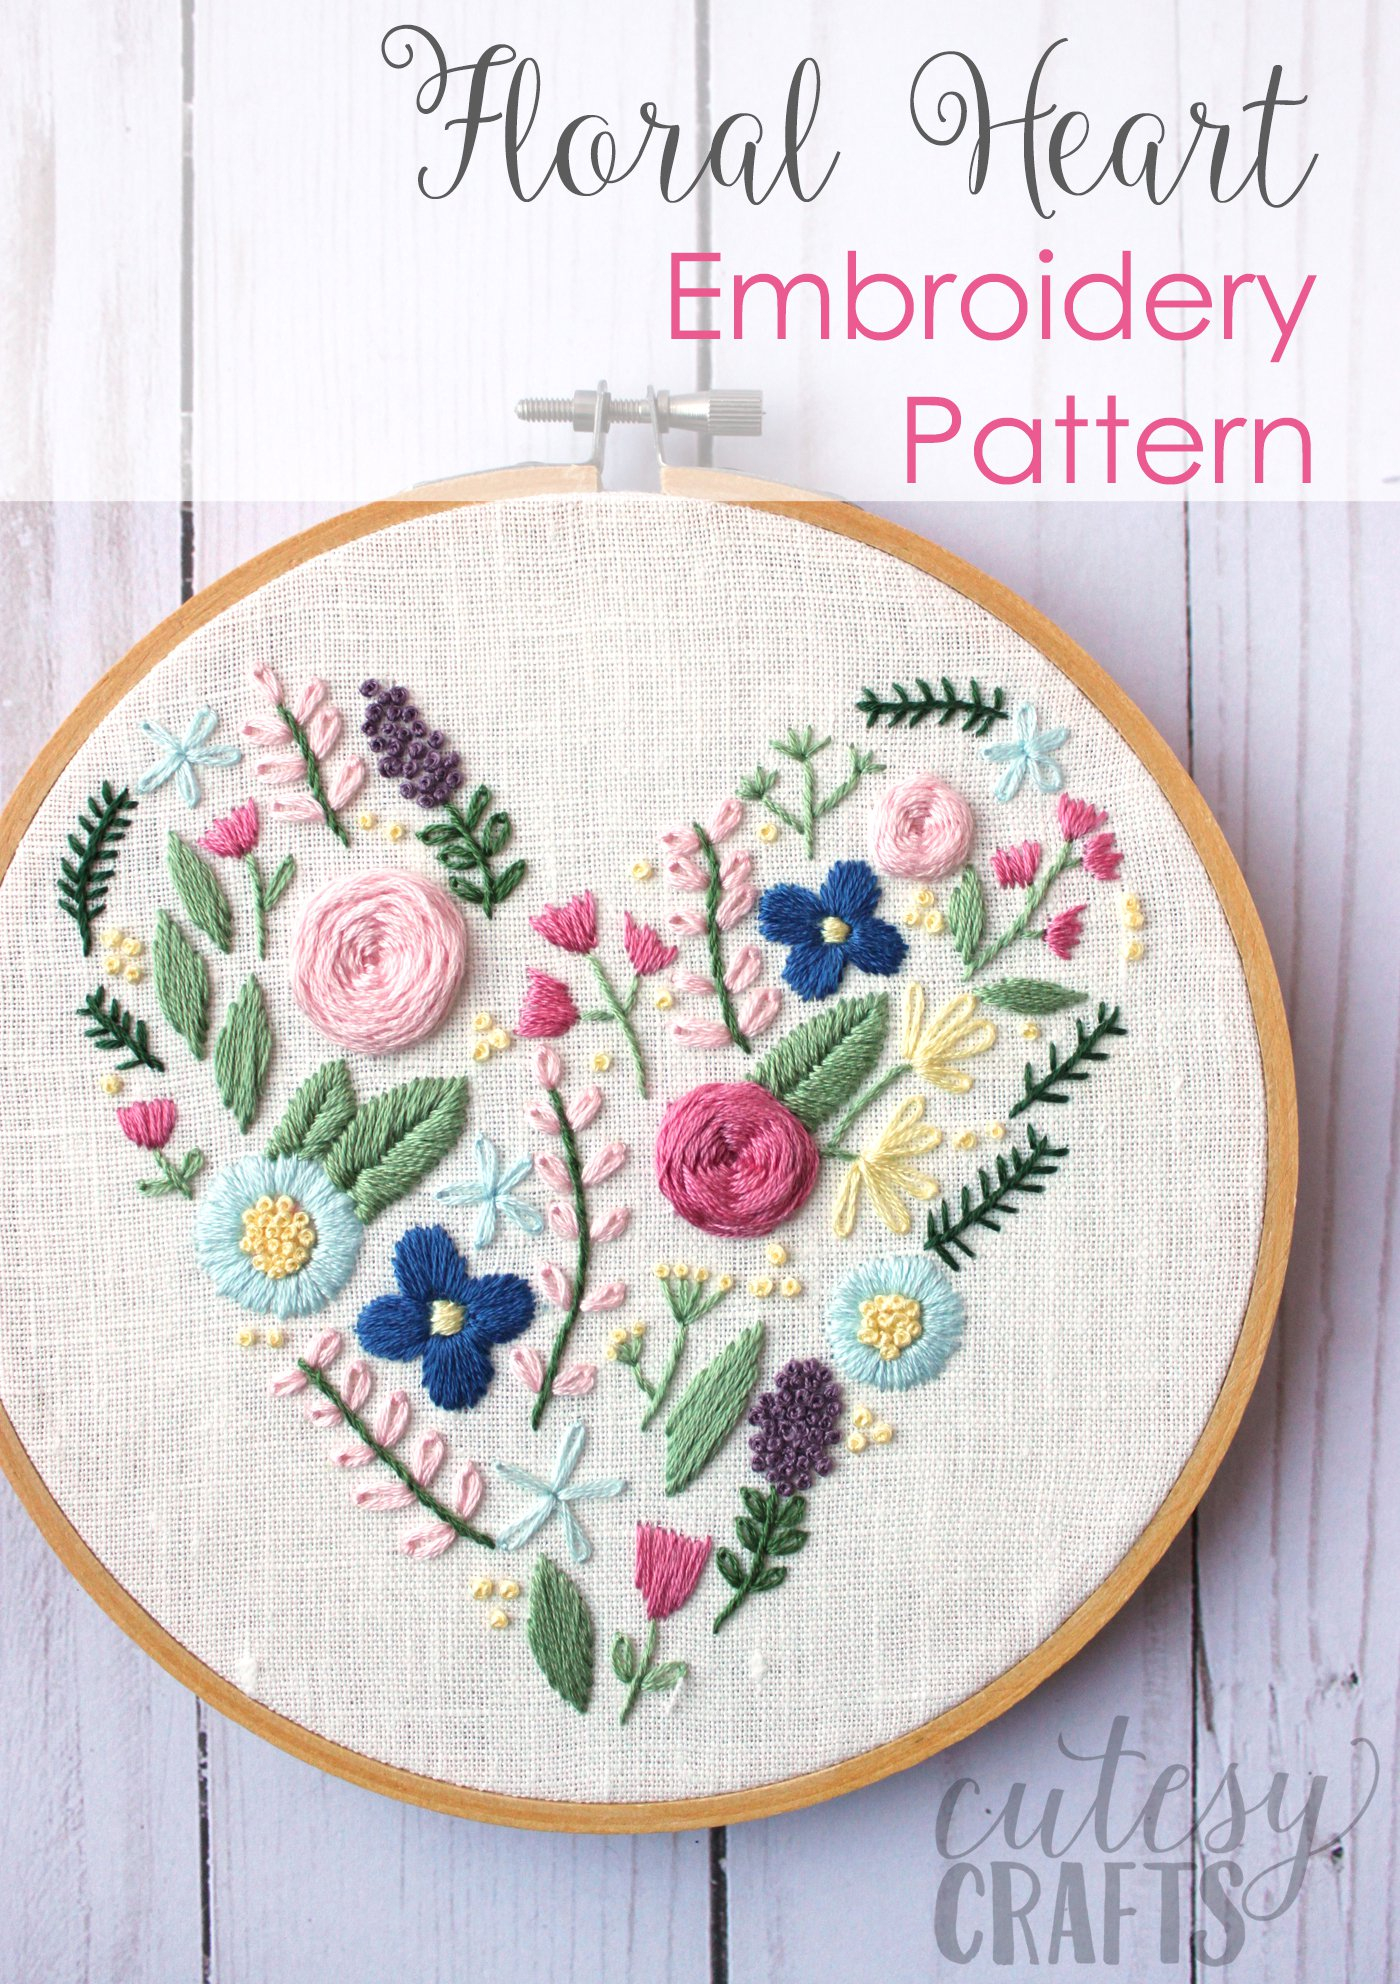 How To Make Hand Embroidery Patterns Floral Heart Hand Embroidery Pattern The Polka Dot Chair